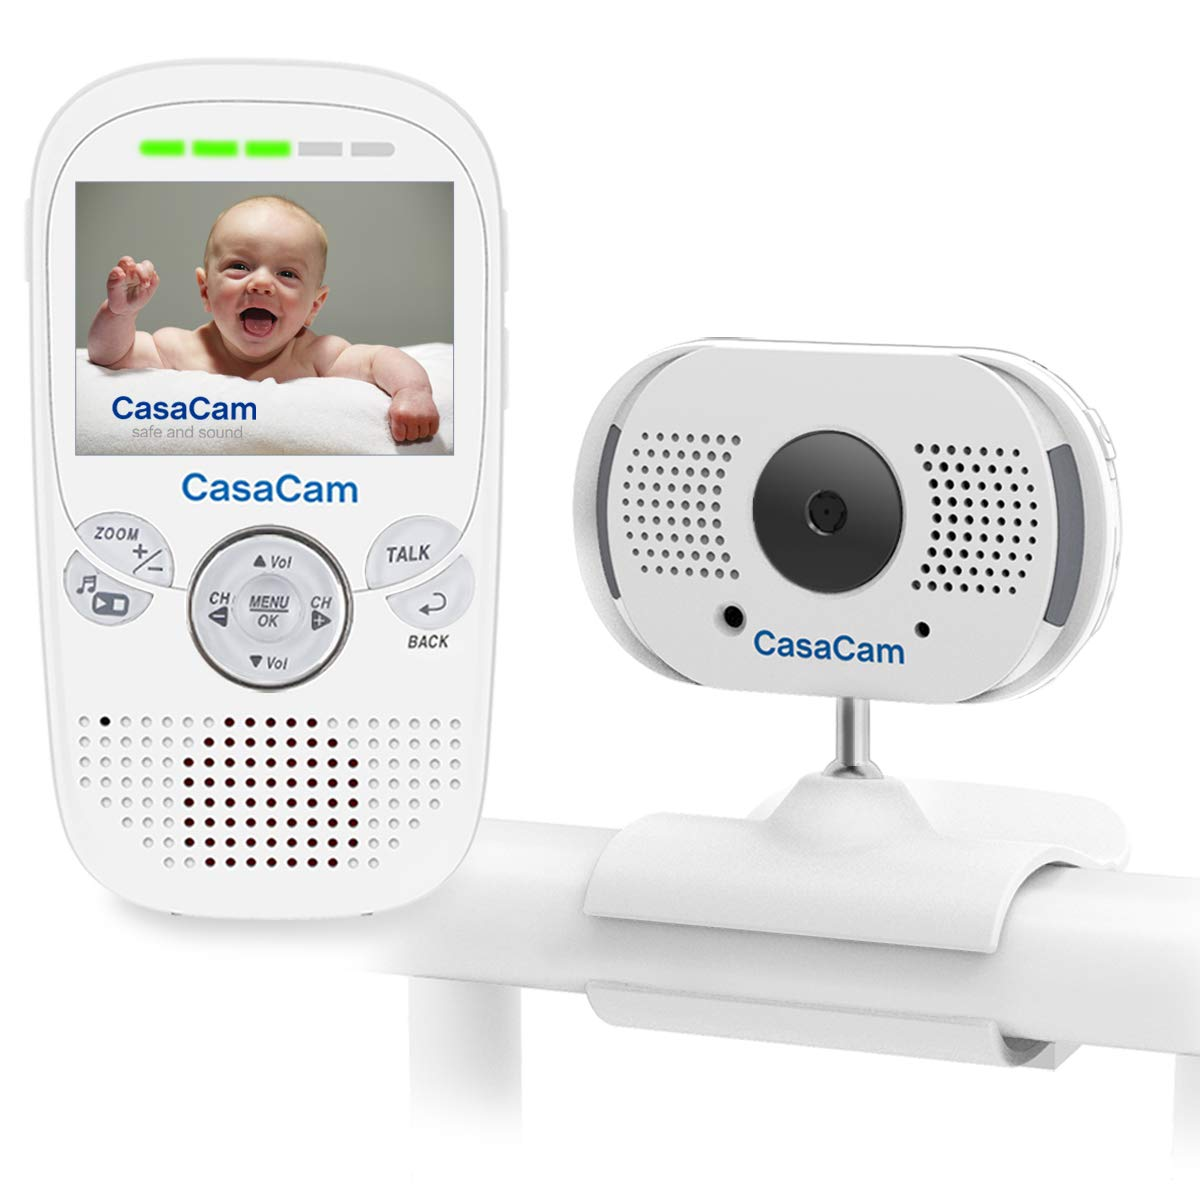 CasaCam BM100 Video Baby Monitor with 2.3'' LCD Monitor and Digital ClipCam, Two-Way Audio, Automatic Night Vision, Temperature Monitoring, Night Light and Lullabies (1-cam kit) by CasaCam (Image #1)